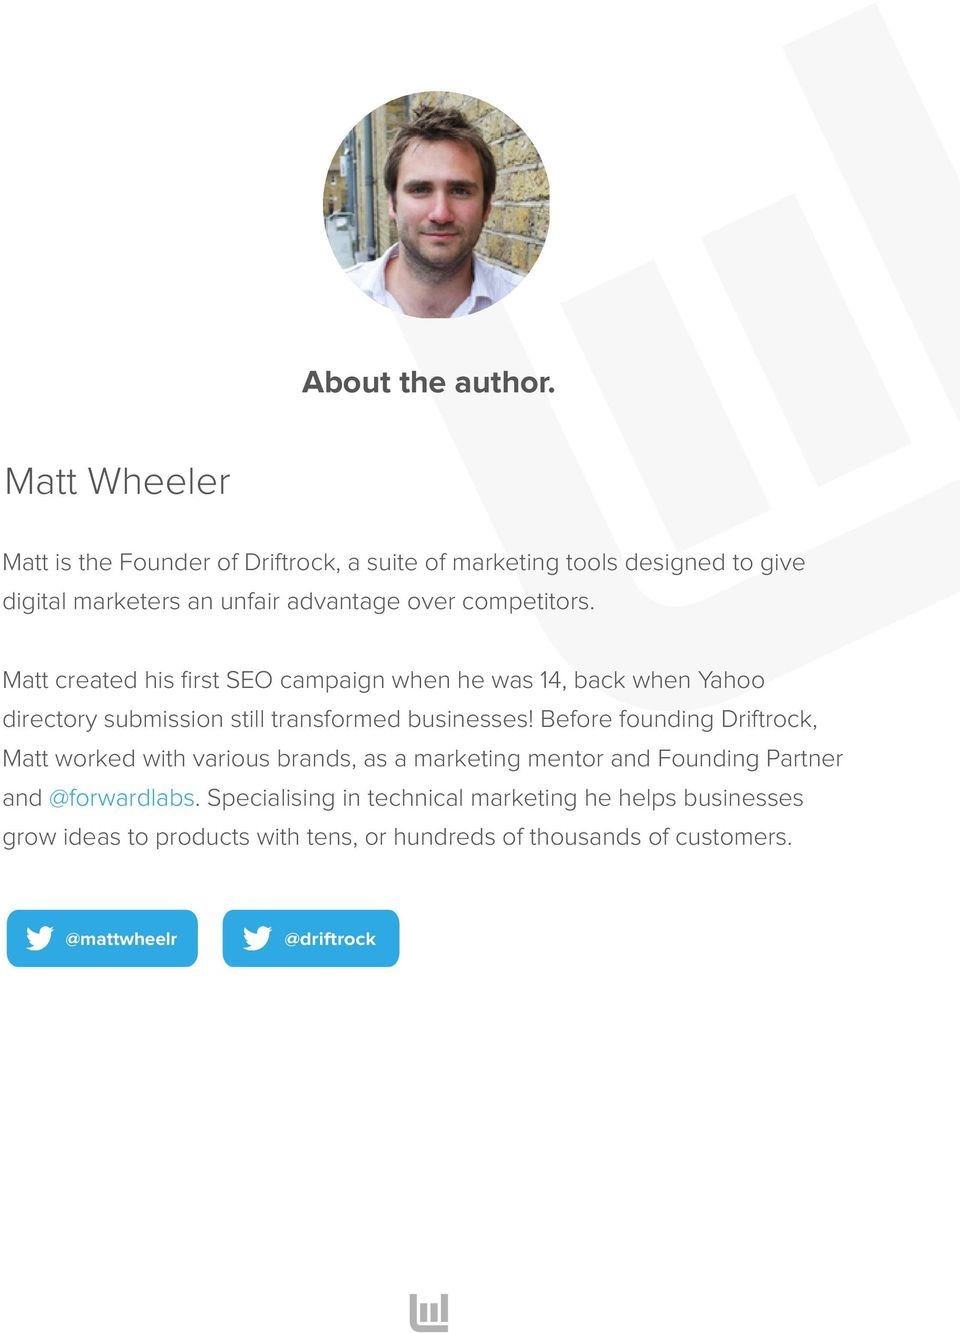 competitors. Matt created his first SEO campaign when he was 14, back when Yahoo directory submission still transformed businesses!